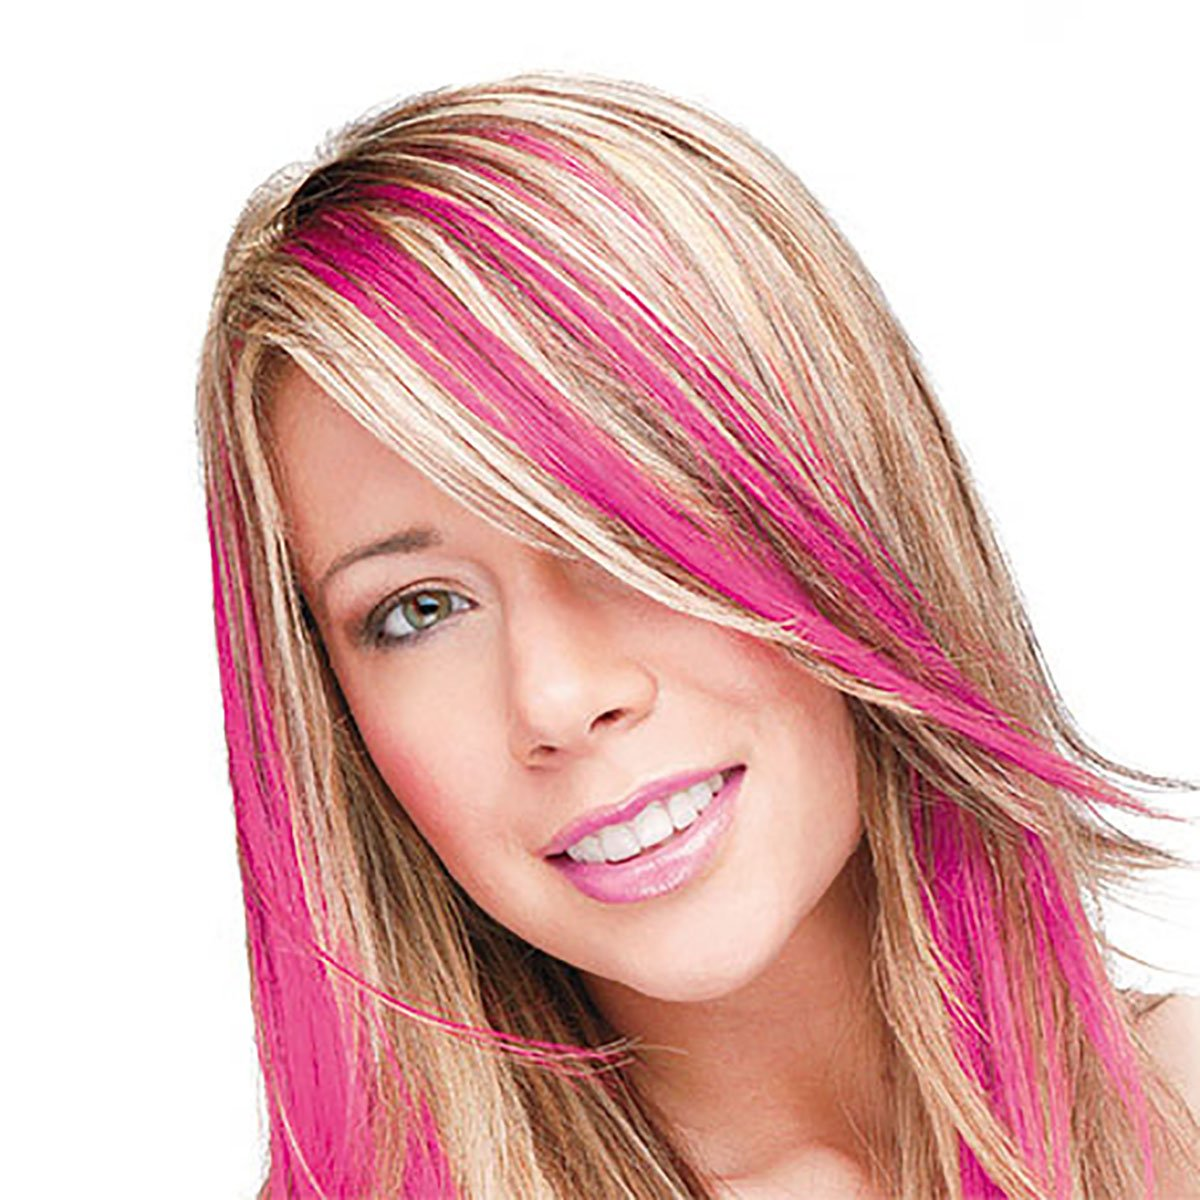 Smart Highlights Neon Pink Hair Colour Amazon Beauty